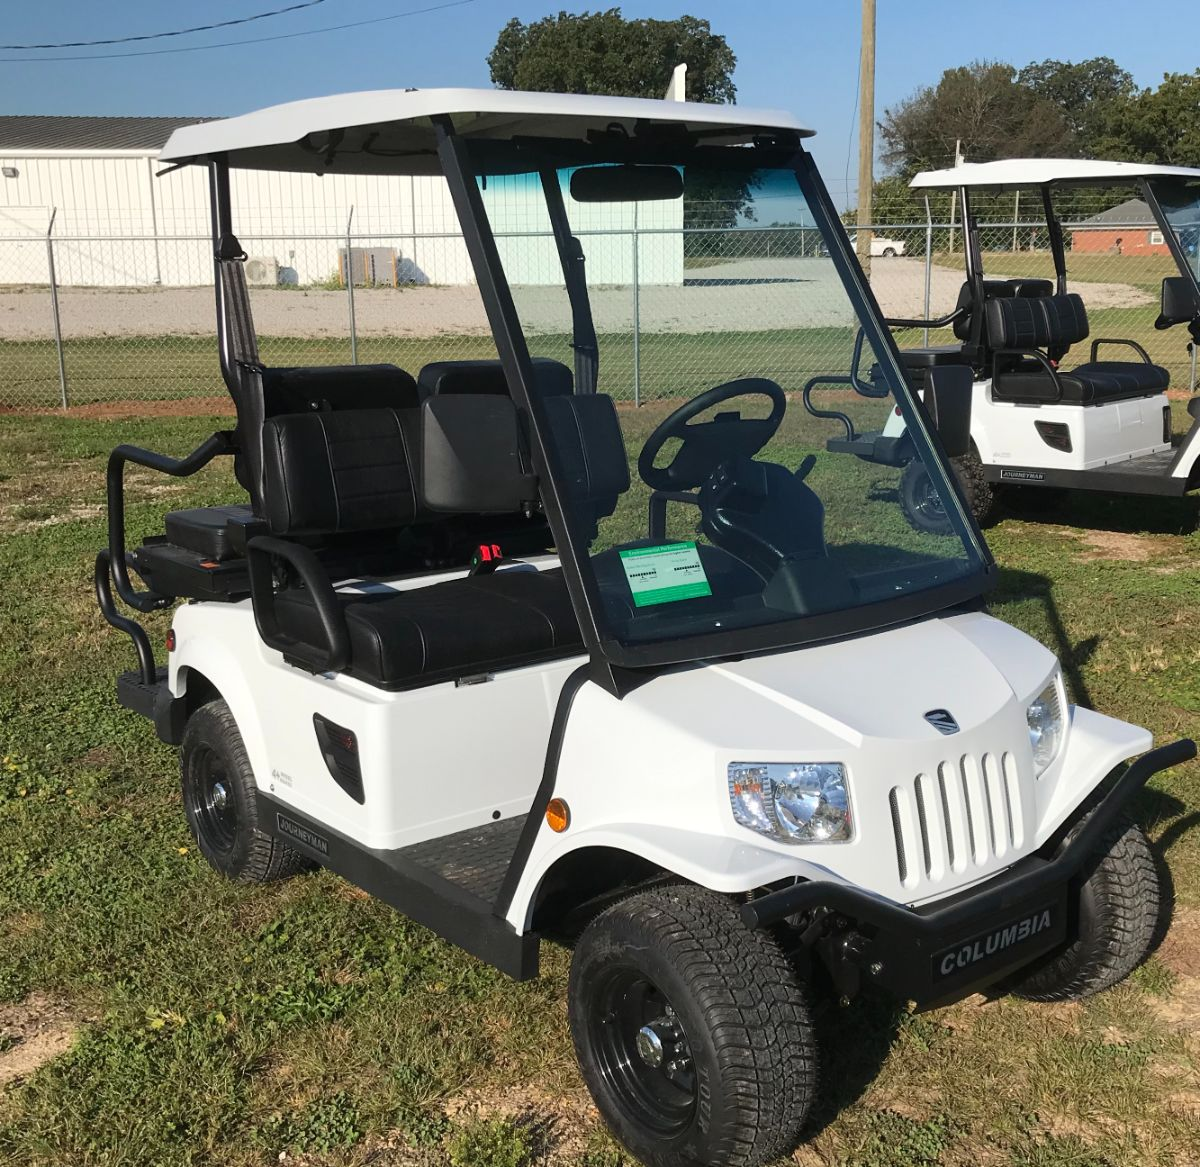 2021 Columbia Journeyman - Street Legal LSV - White for sale at Lift Service Inc in Alabama